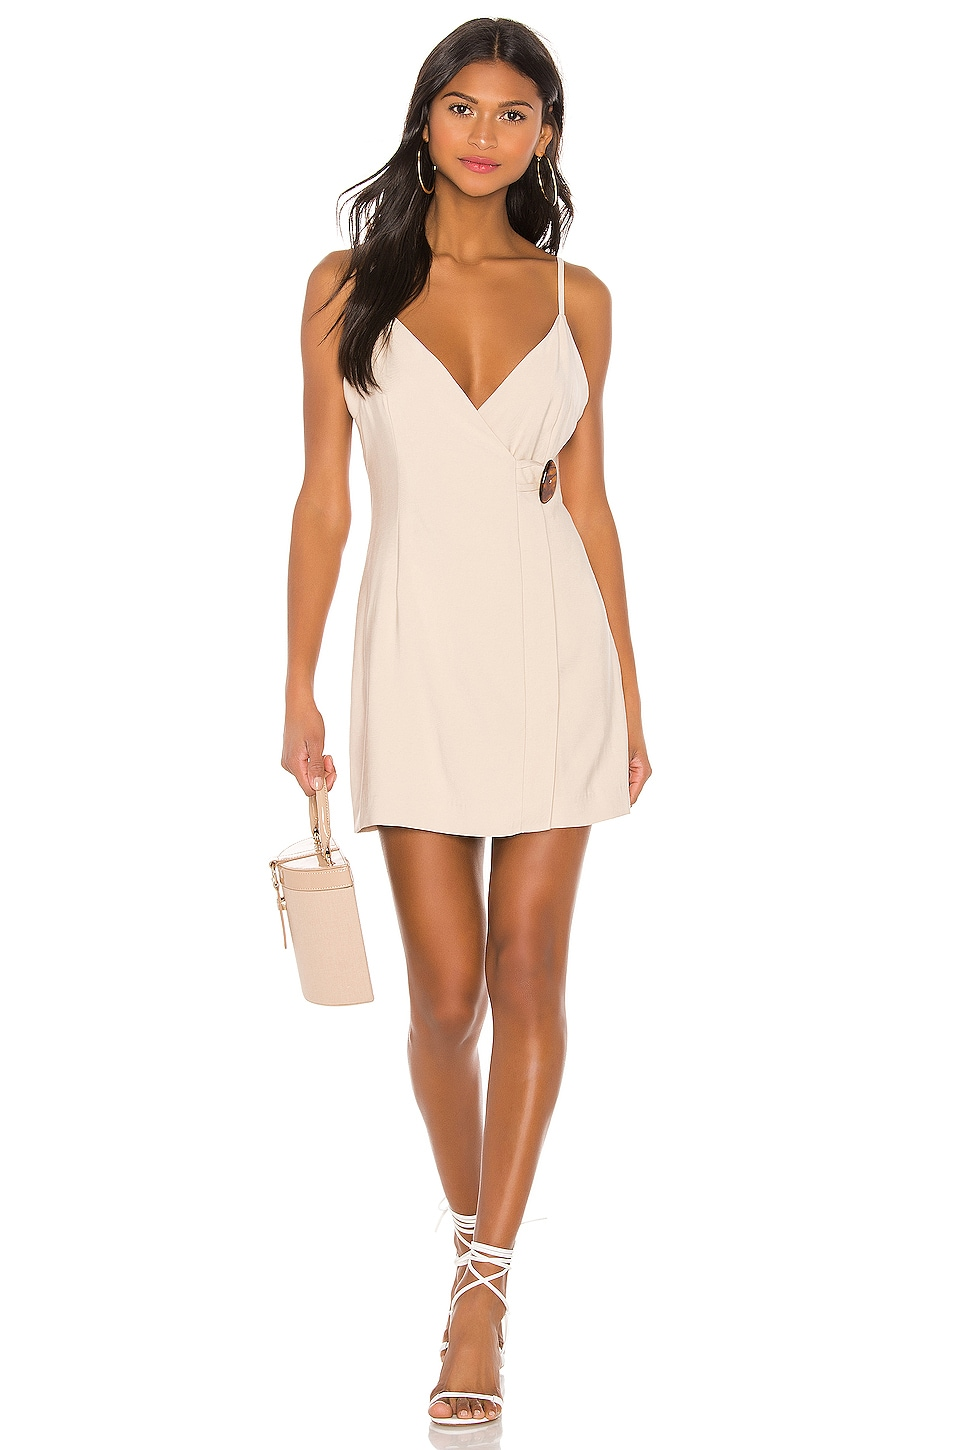 L'Academie The Brigitte Mini Dress in Sand